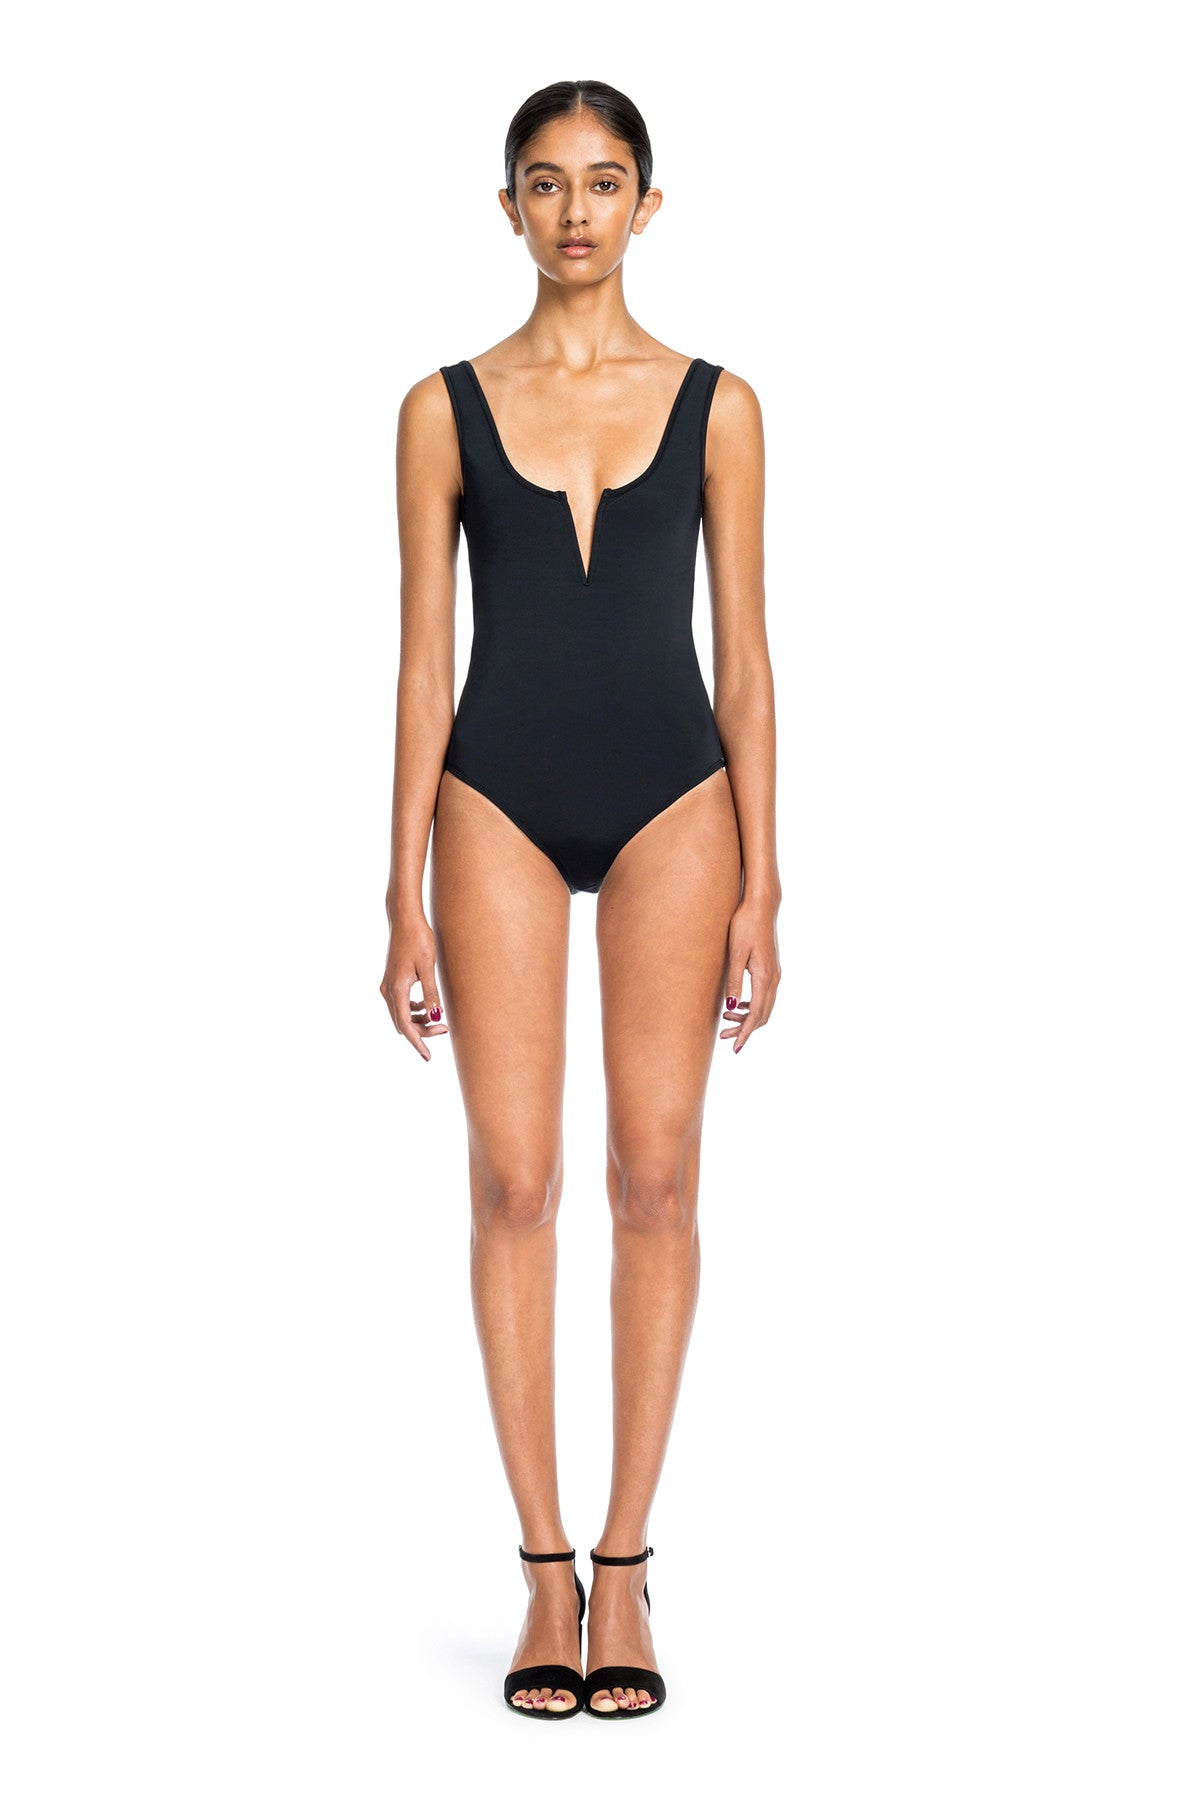 finest fabrics newest style of hot-selling latest INES ONE PIECE - BLACK - X-SMALL / BLACK